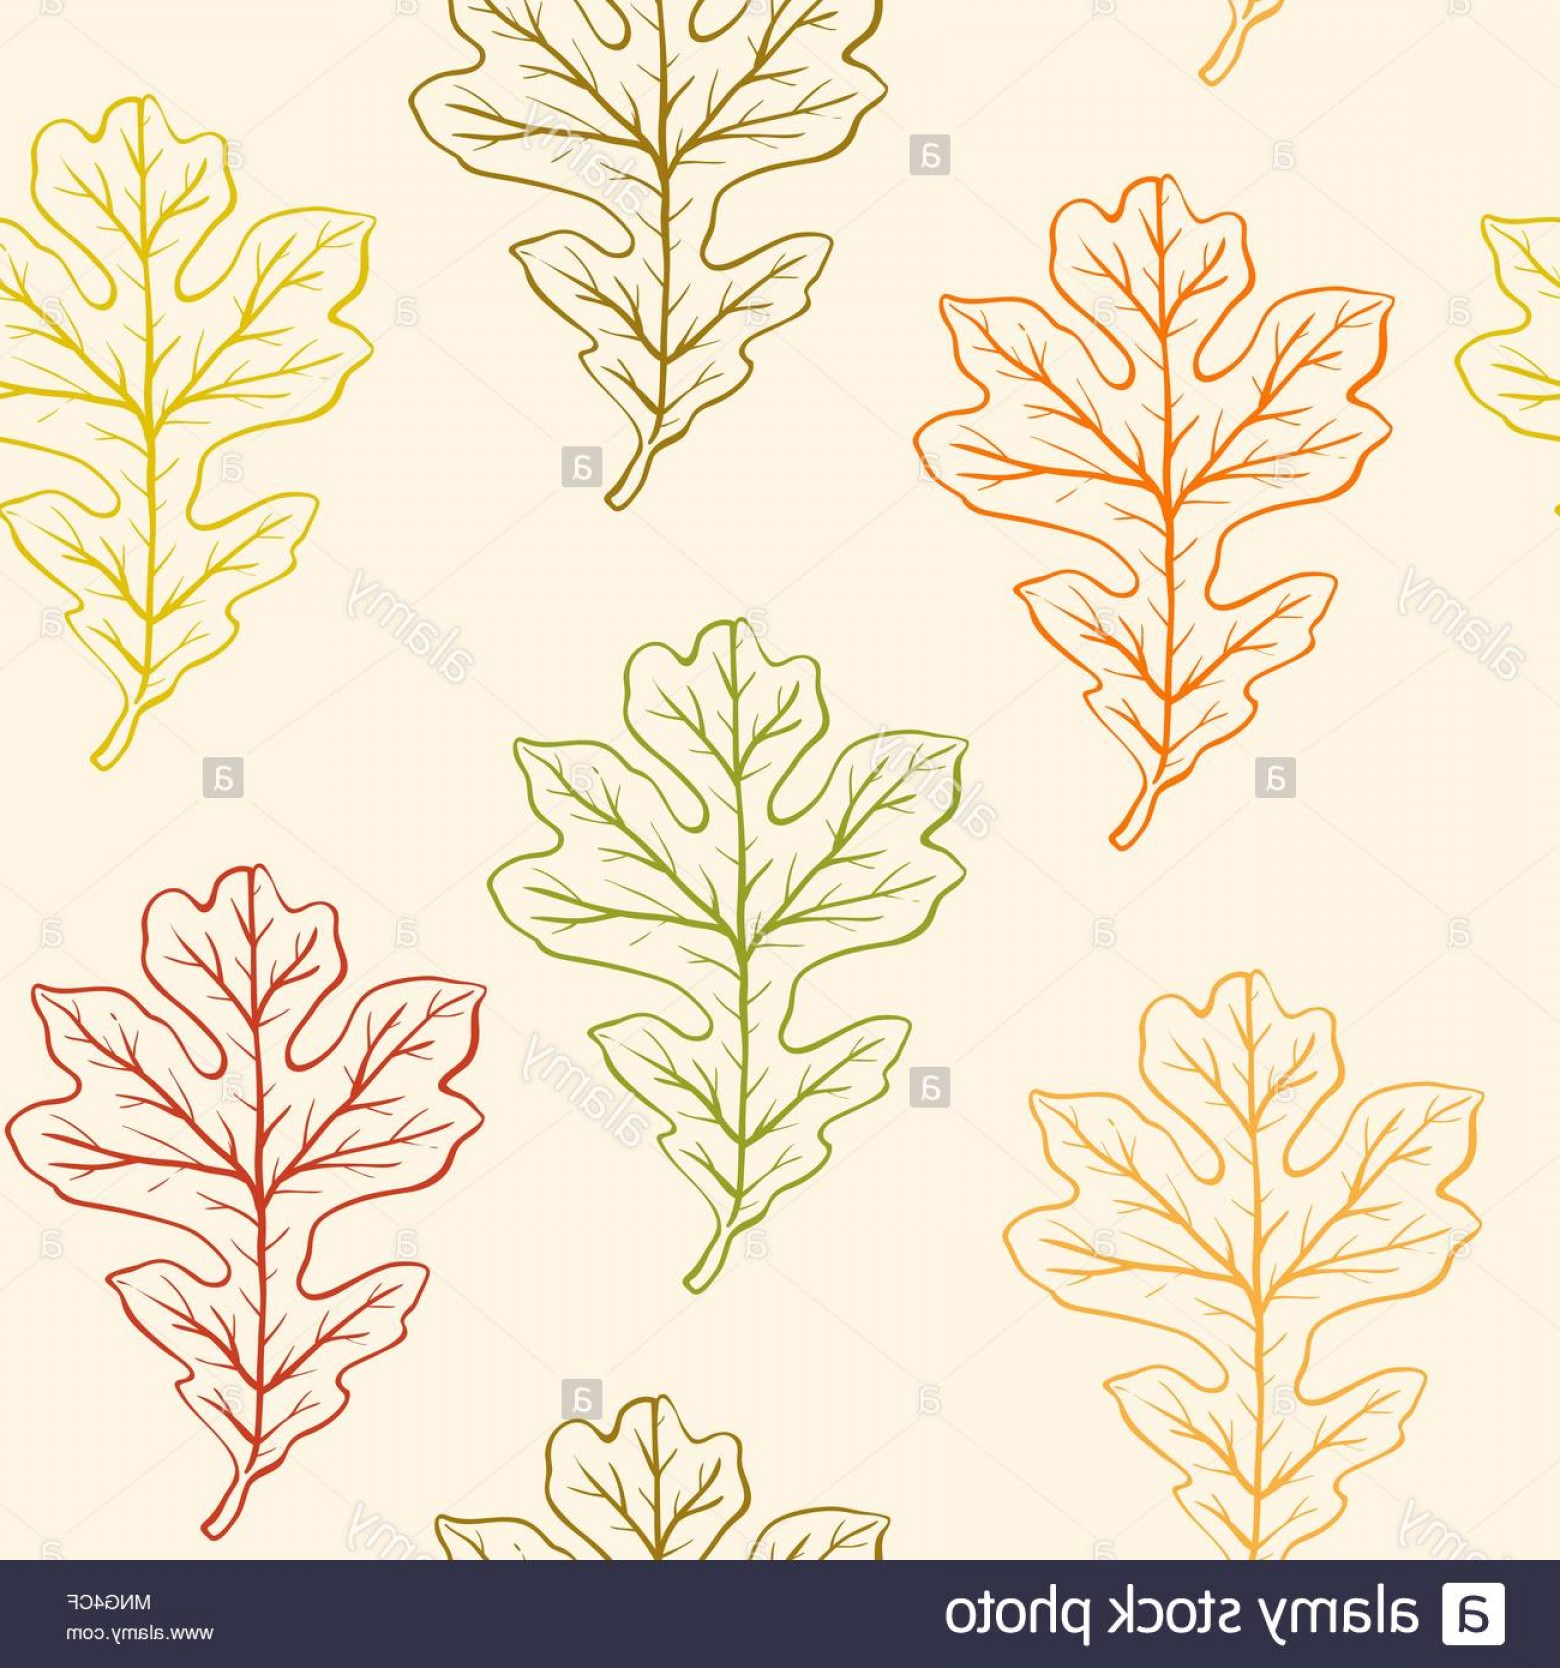 Autumn Seamless Vector: Vector Autumn Seamless Pattern With Oak Leaves Image